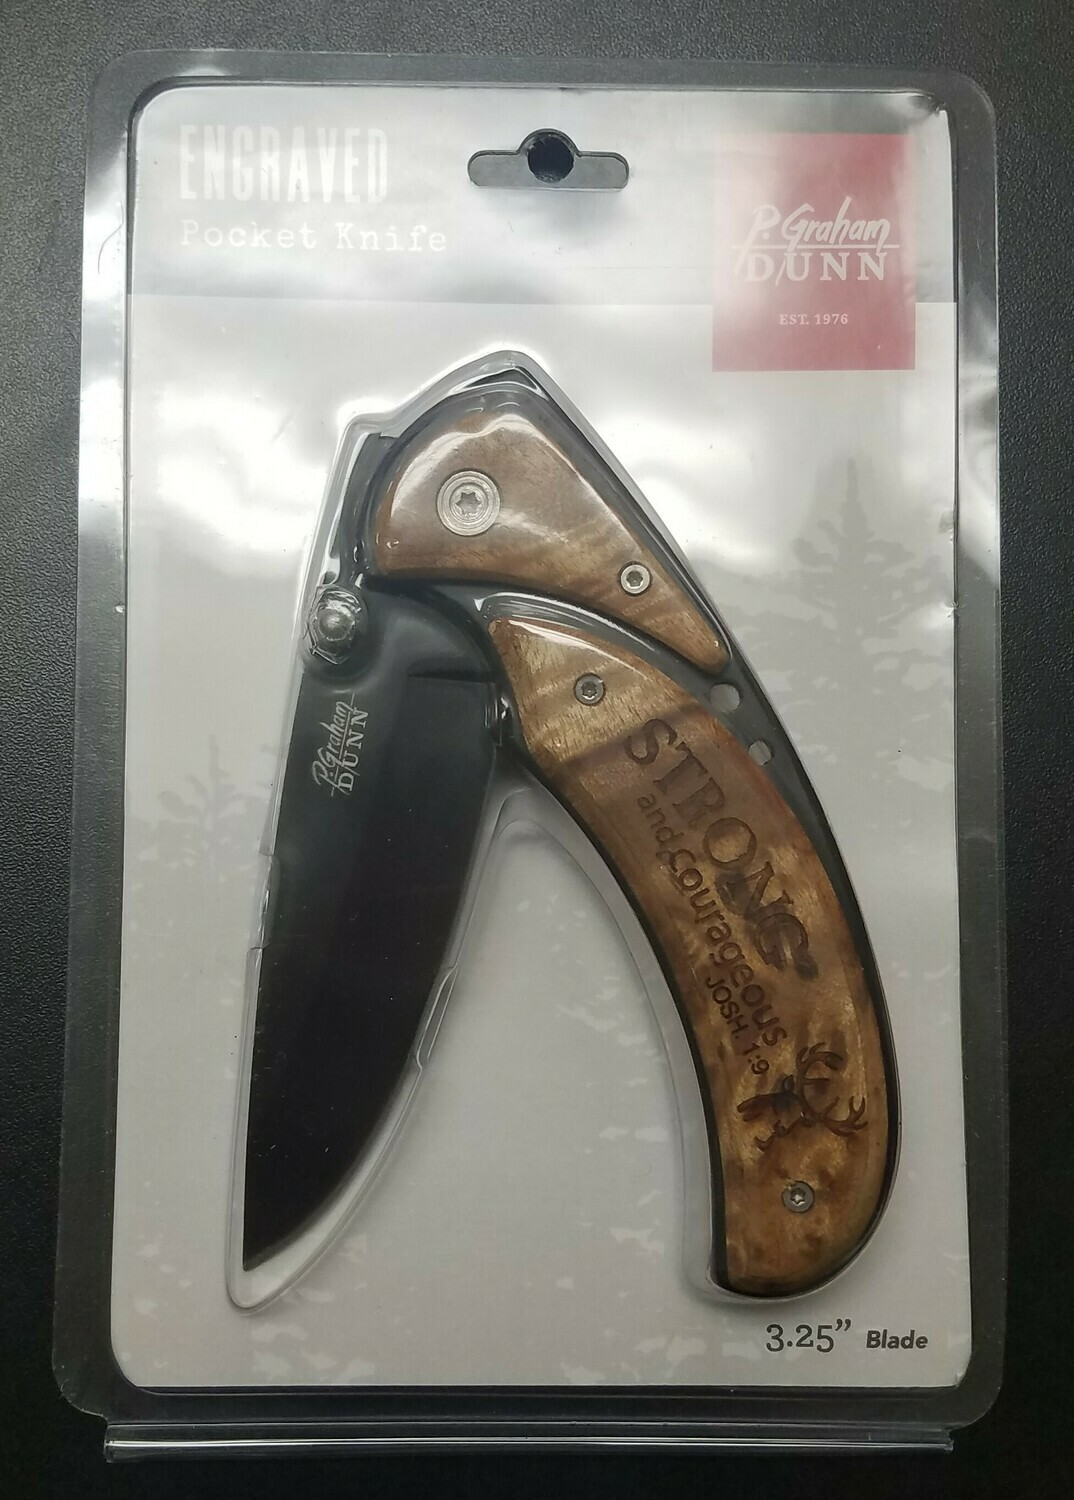 Strong and Courageous Pocket Knife